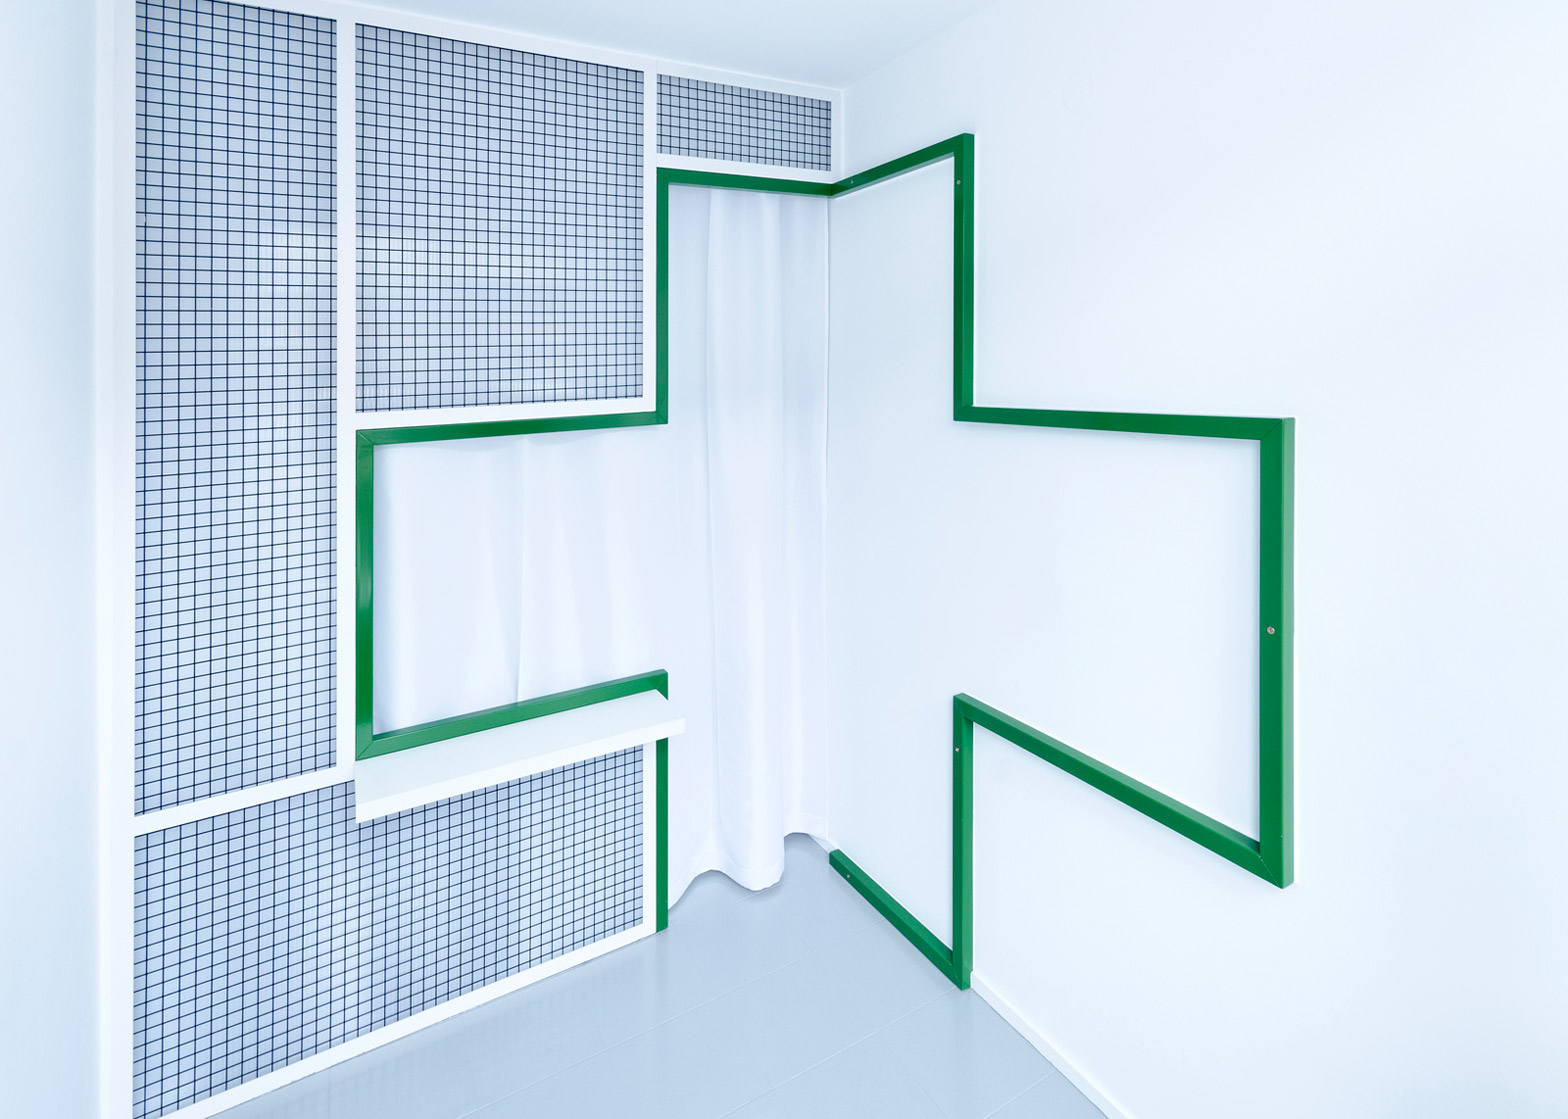 Usm Möbel Klinik Südhang Adam Wiercinski Creates Green Cross Interior For Denture Clinic